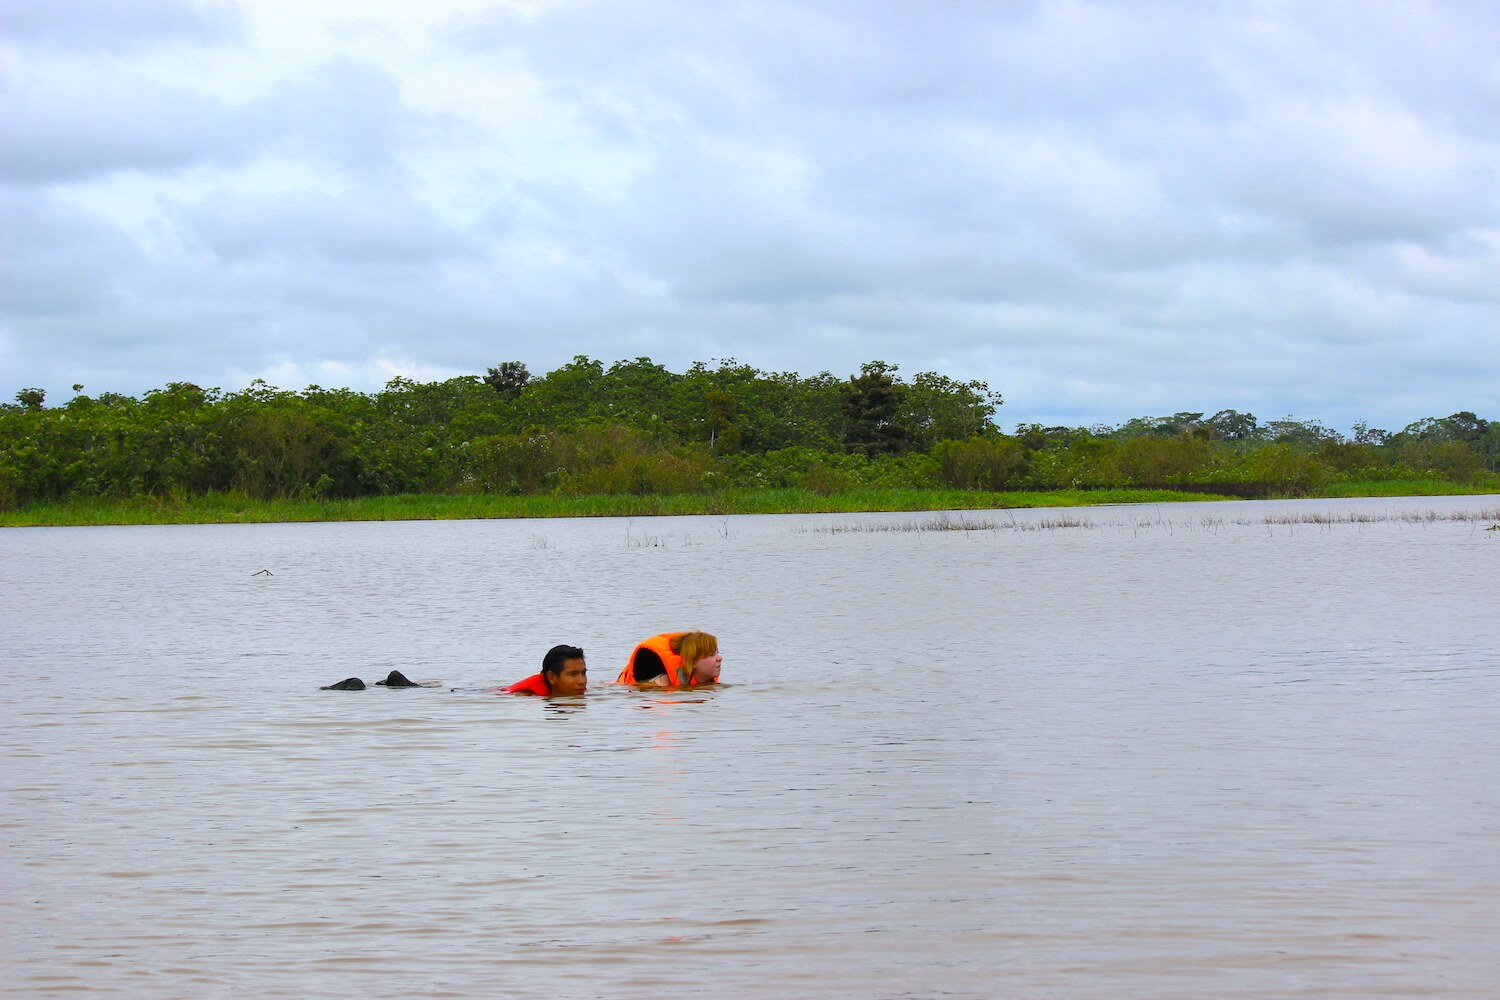 peruvian amazon swimming in river